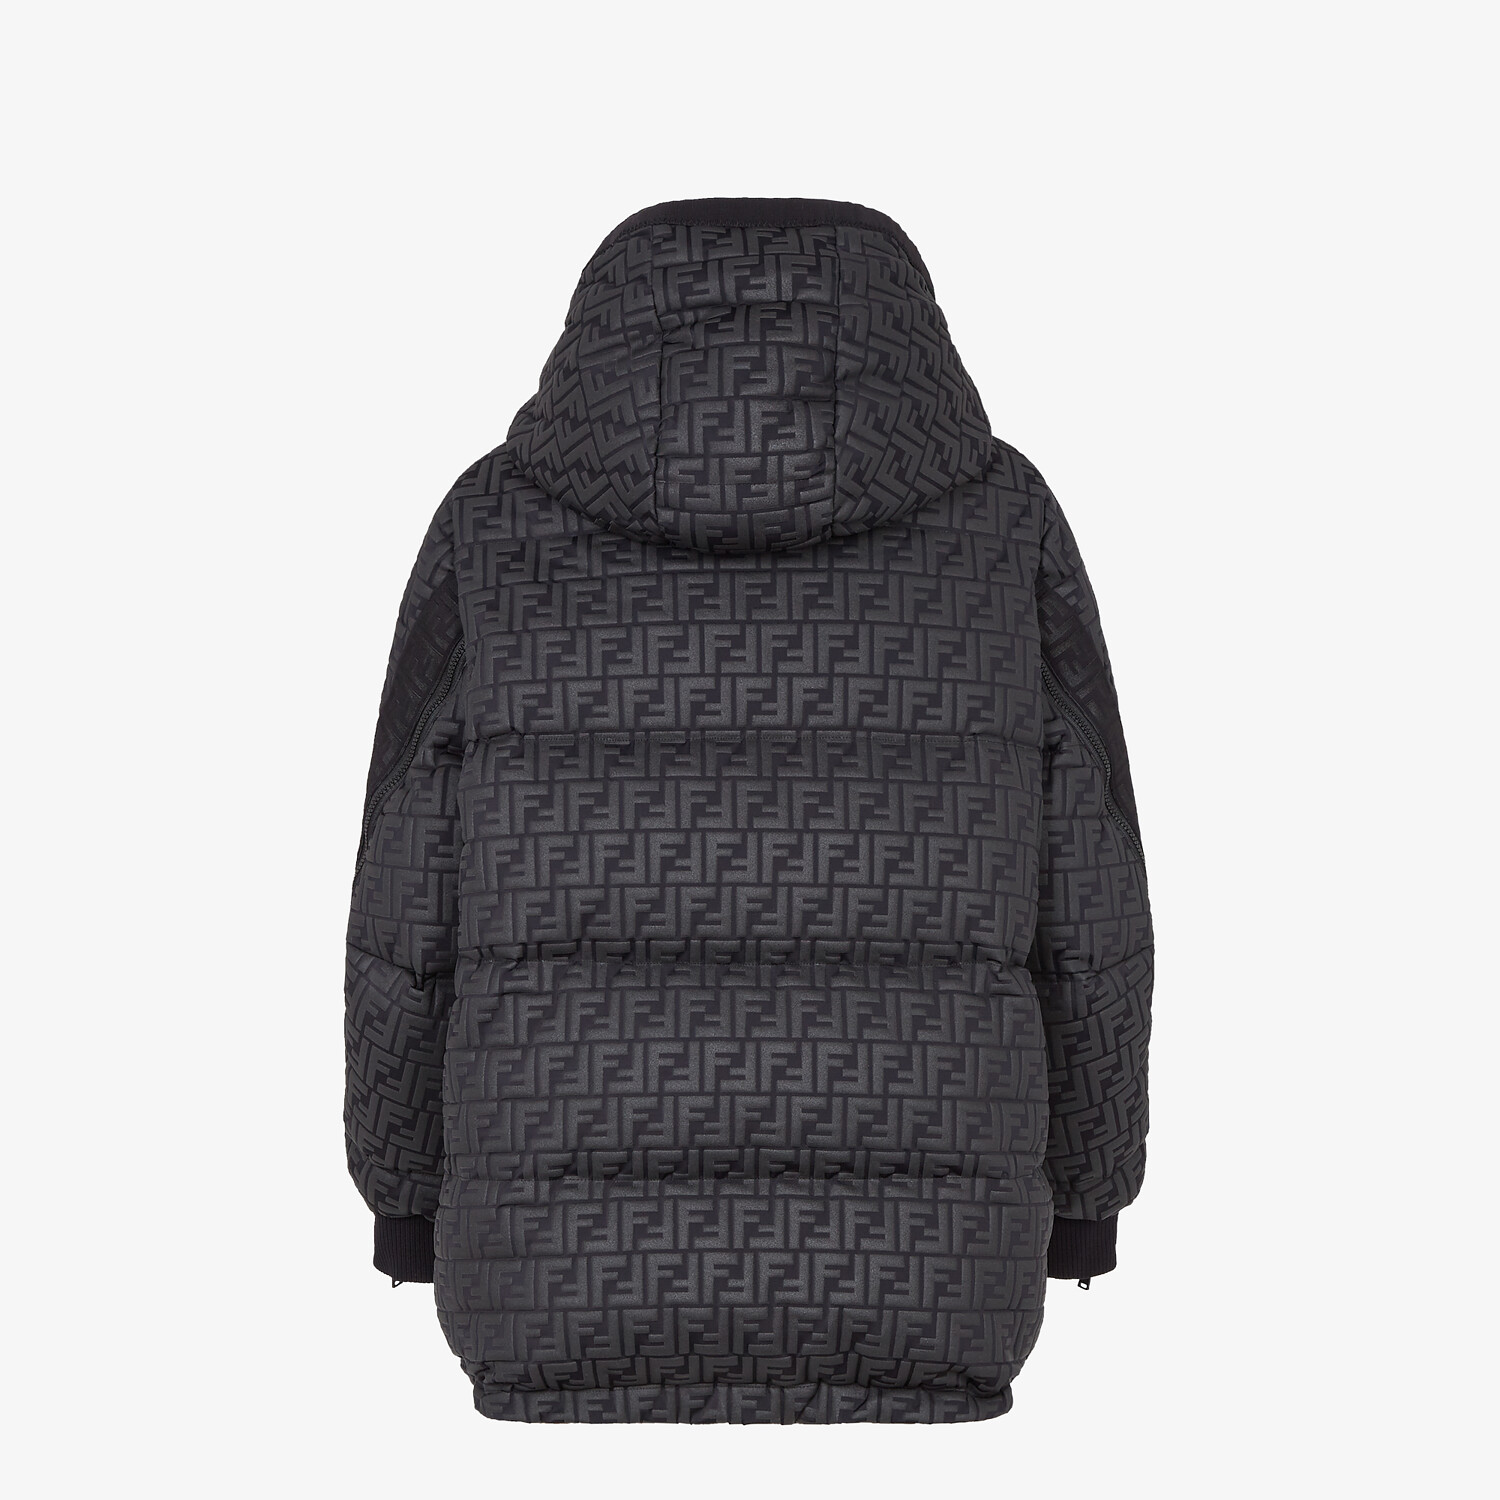 FENDI SKI JACKET - Ski jacket in black nylon - view 2 detail